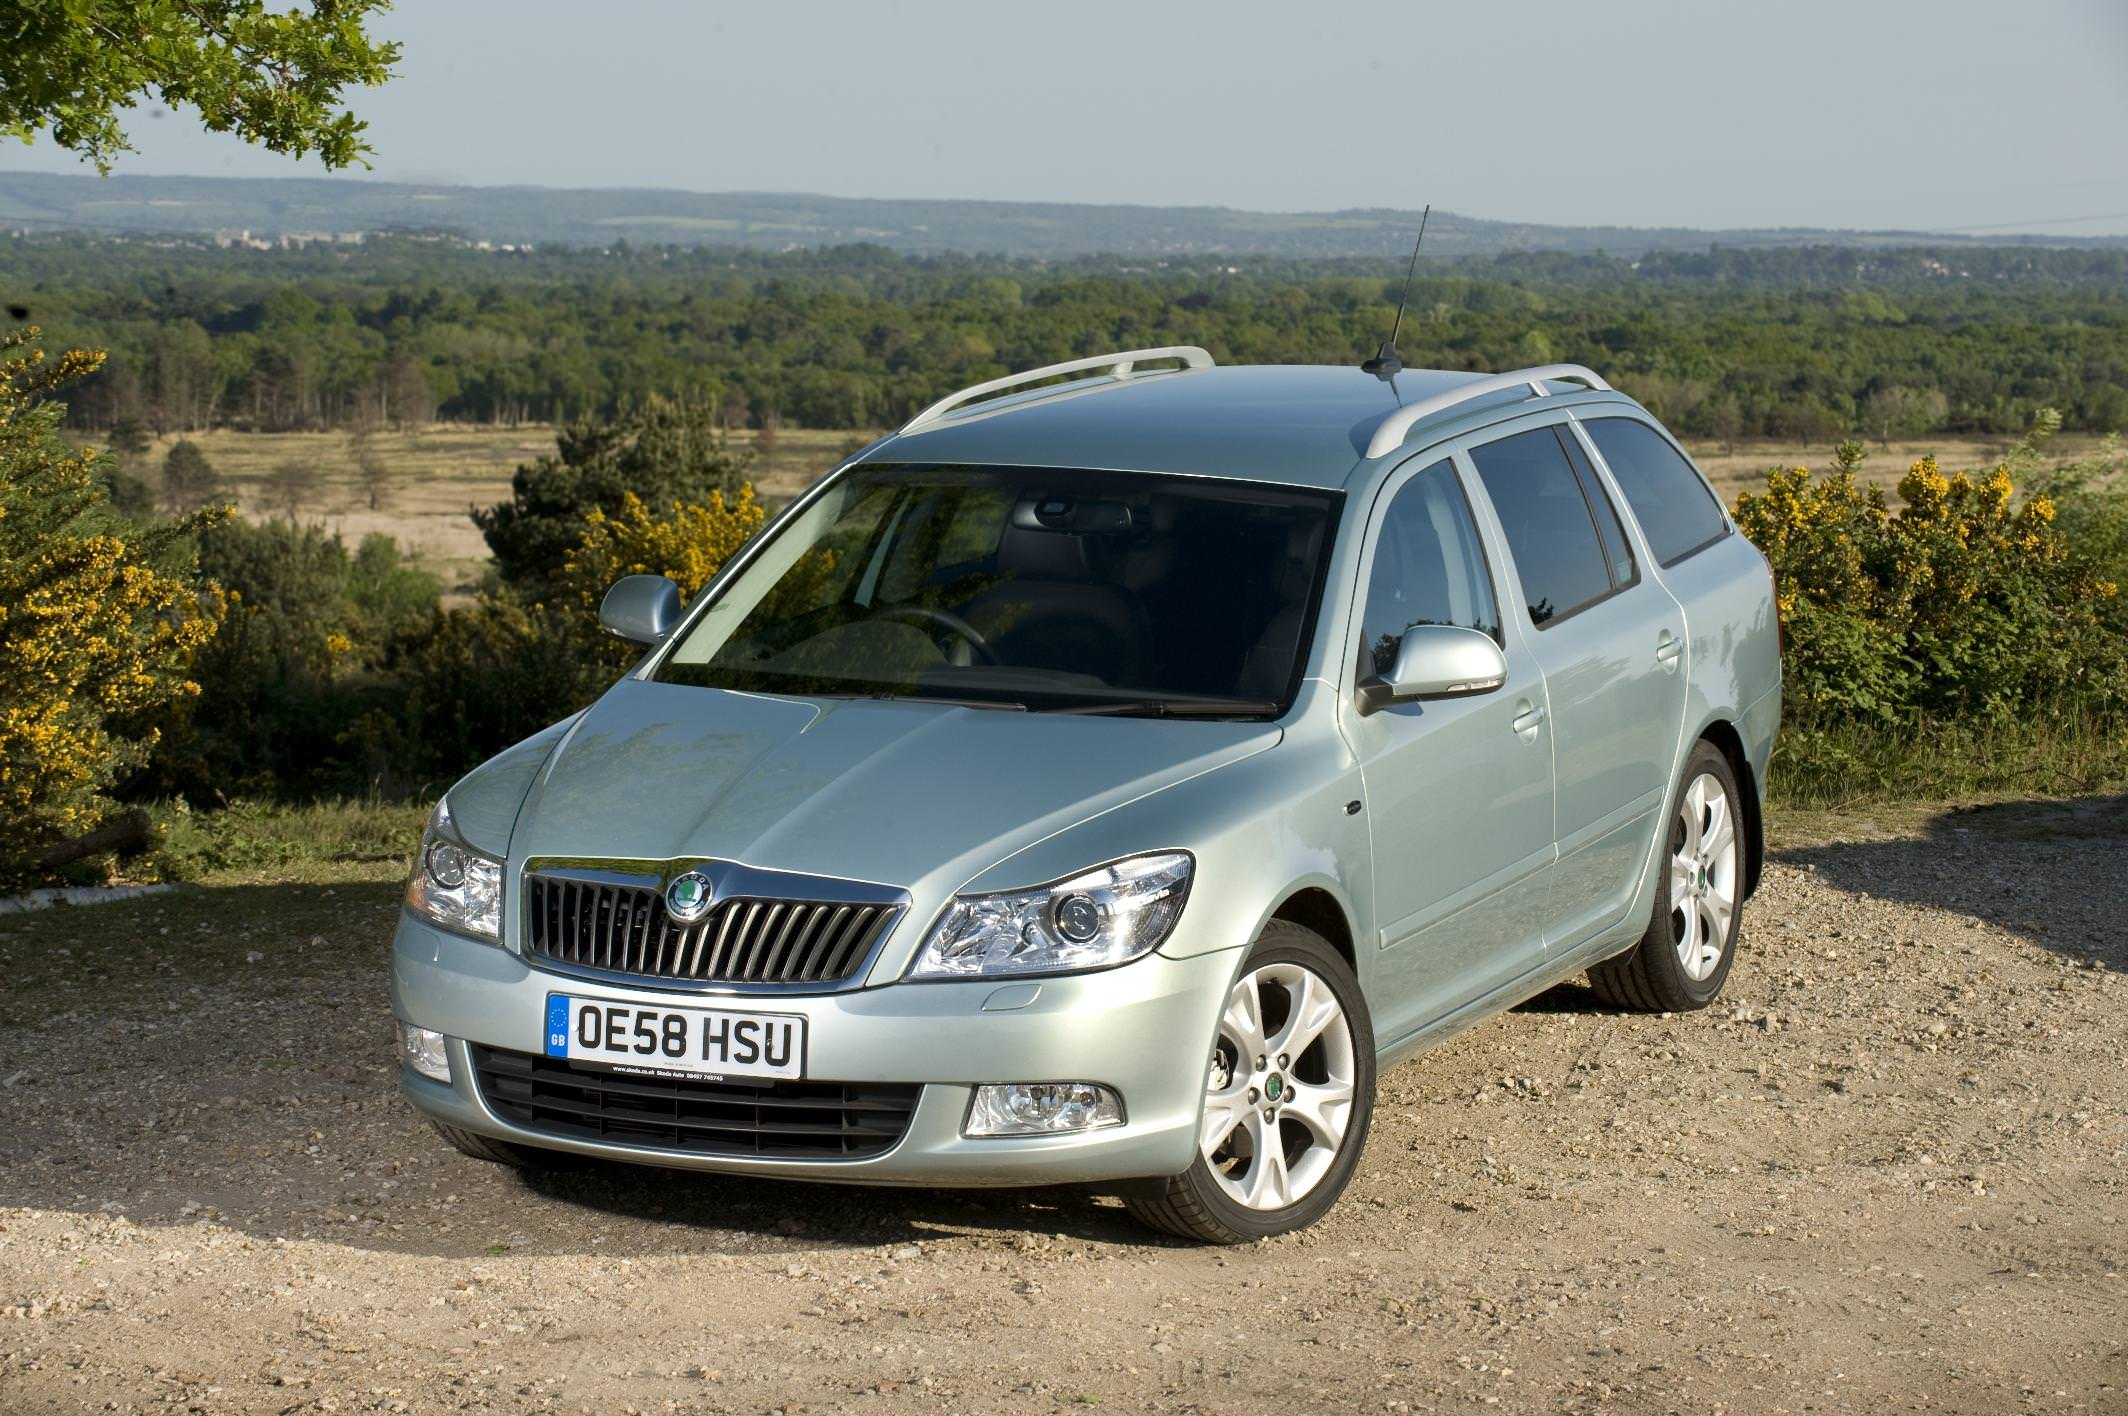 A Skoda Octavia estate, one of the best used family cars for £600